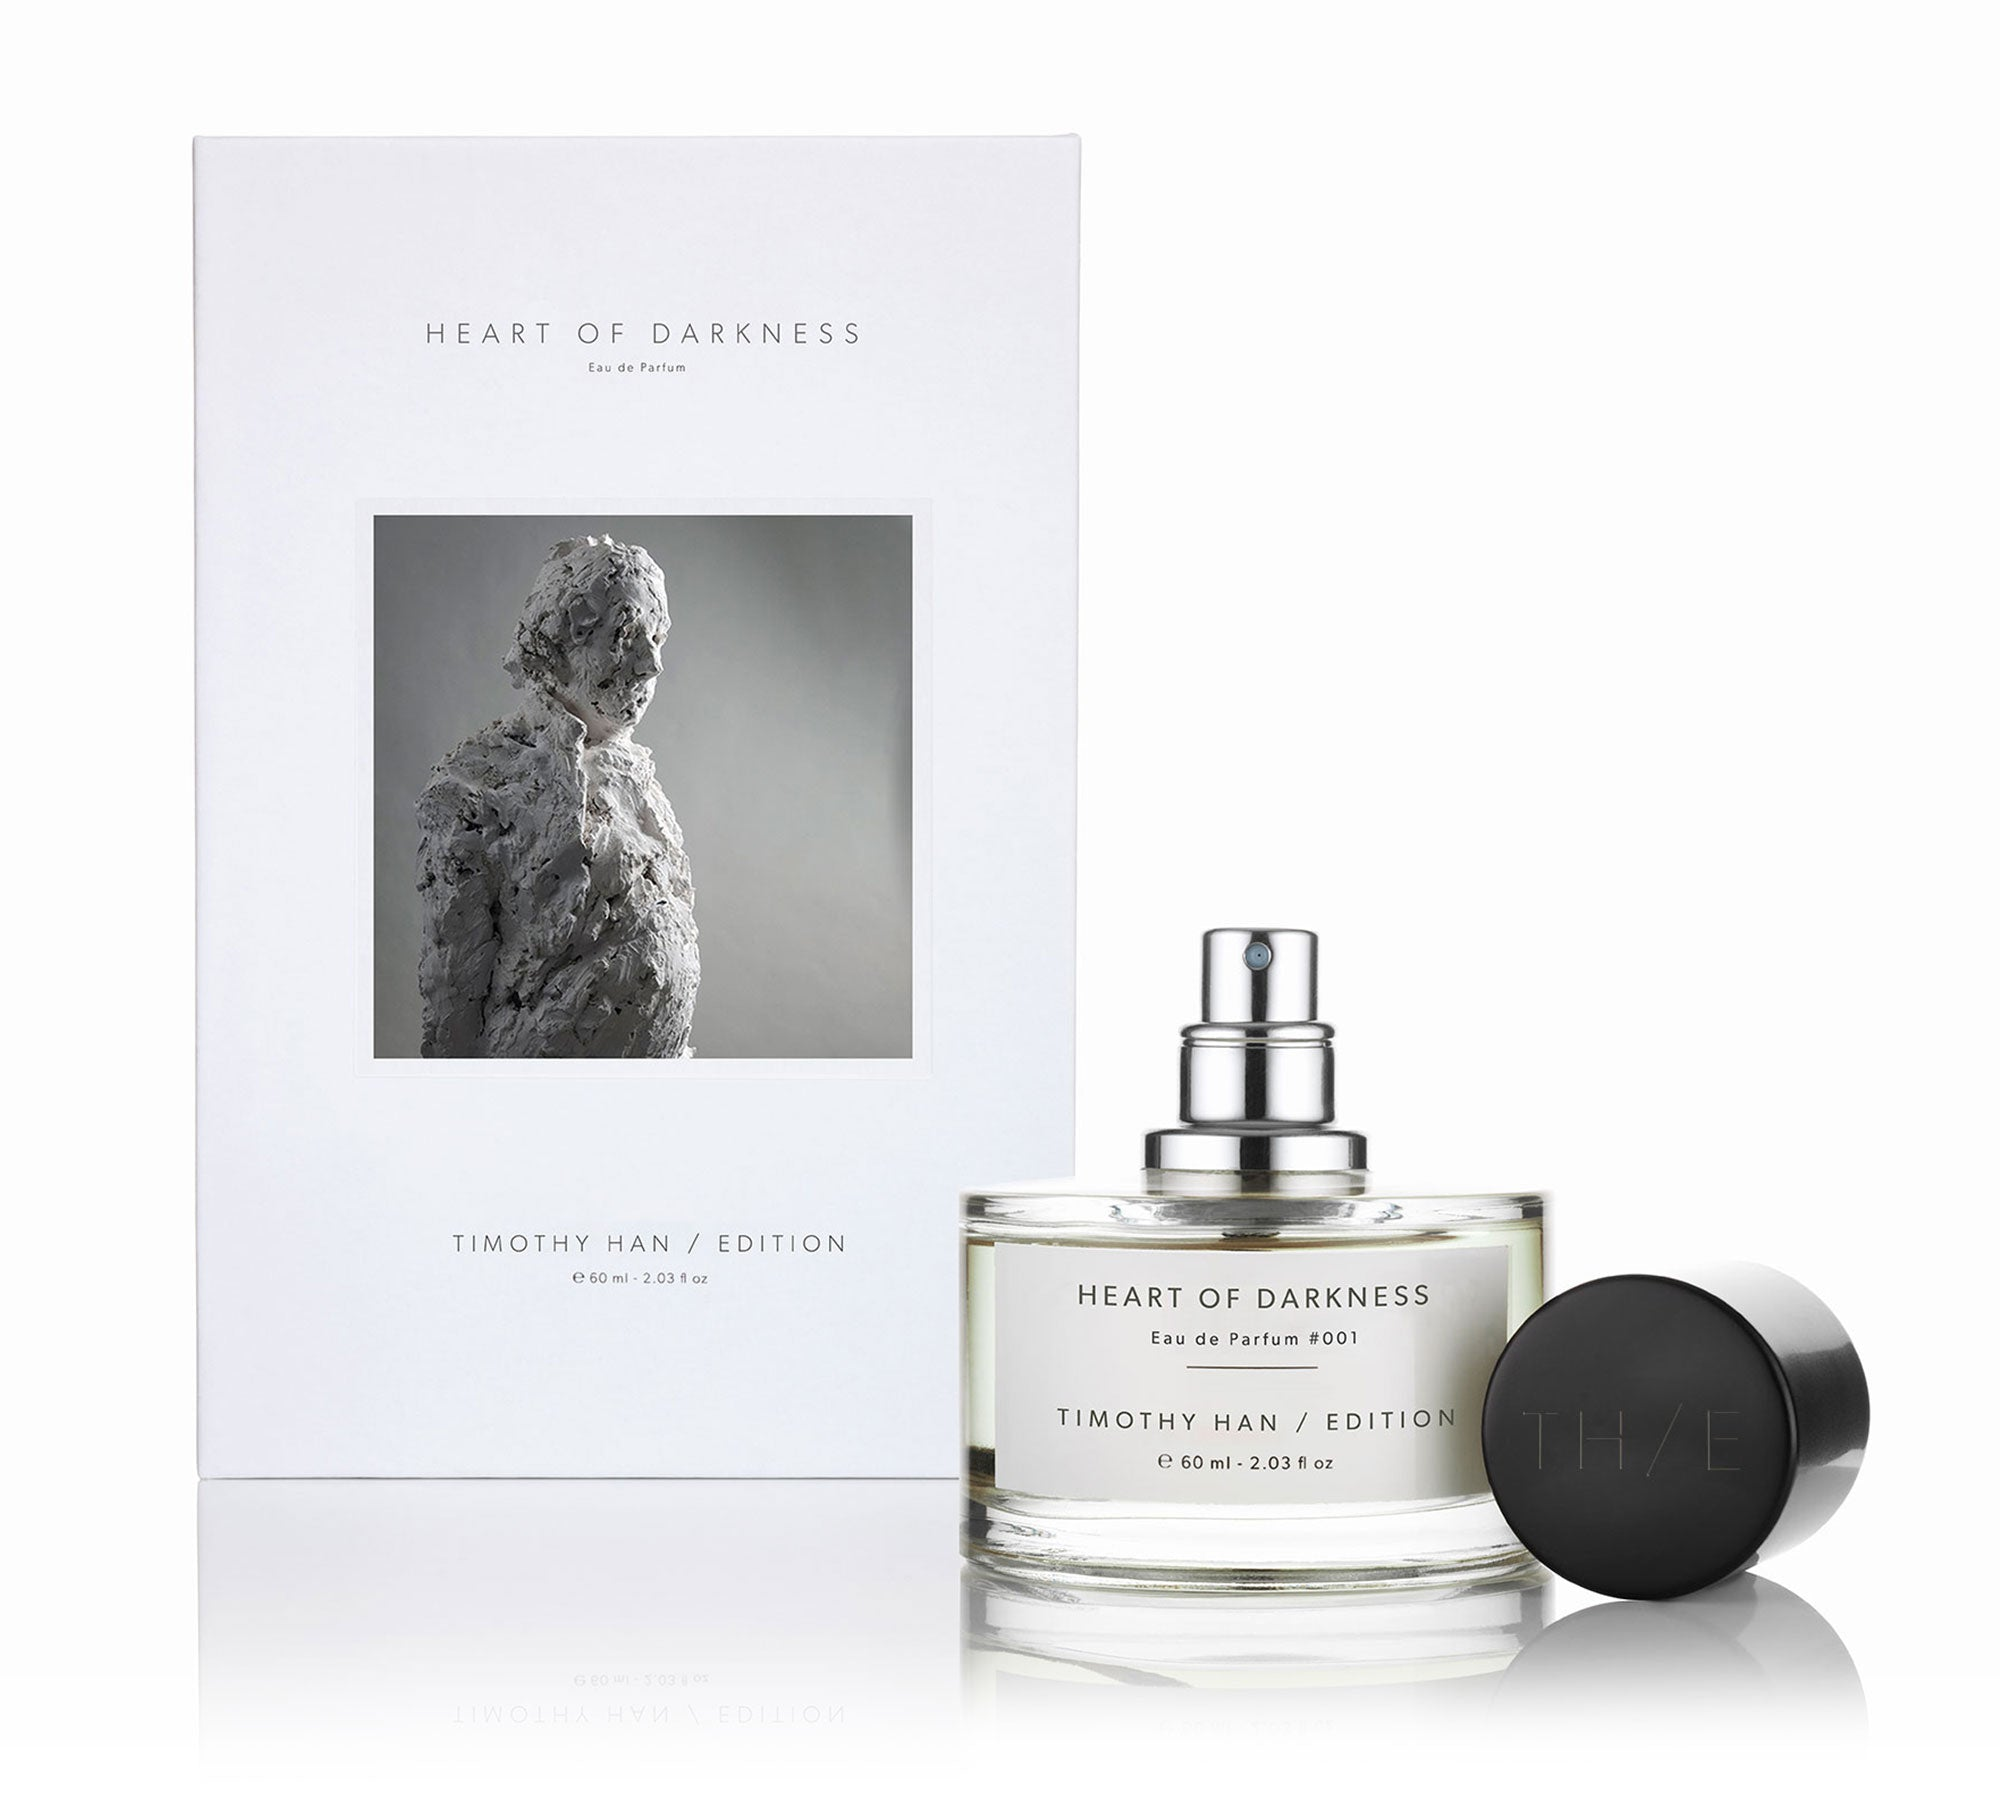 Heart of Darkness - Eau de Parfum